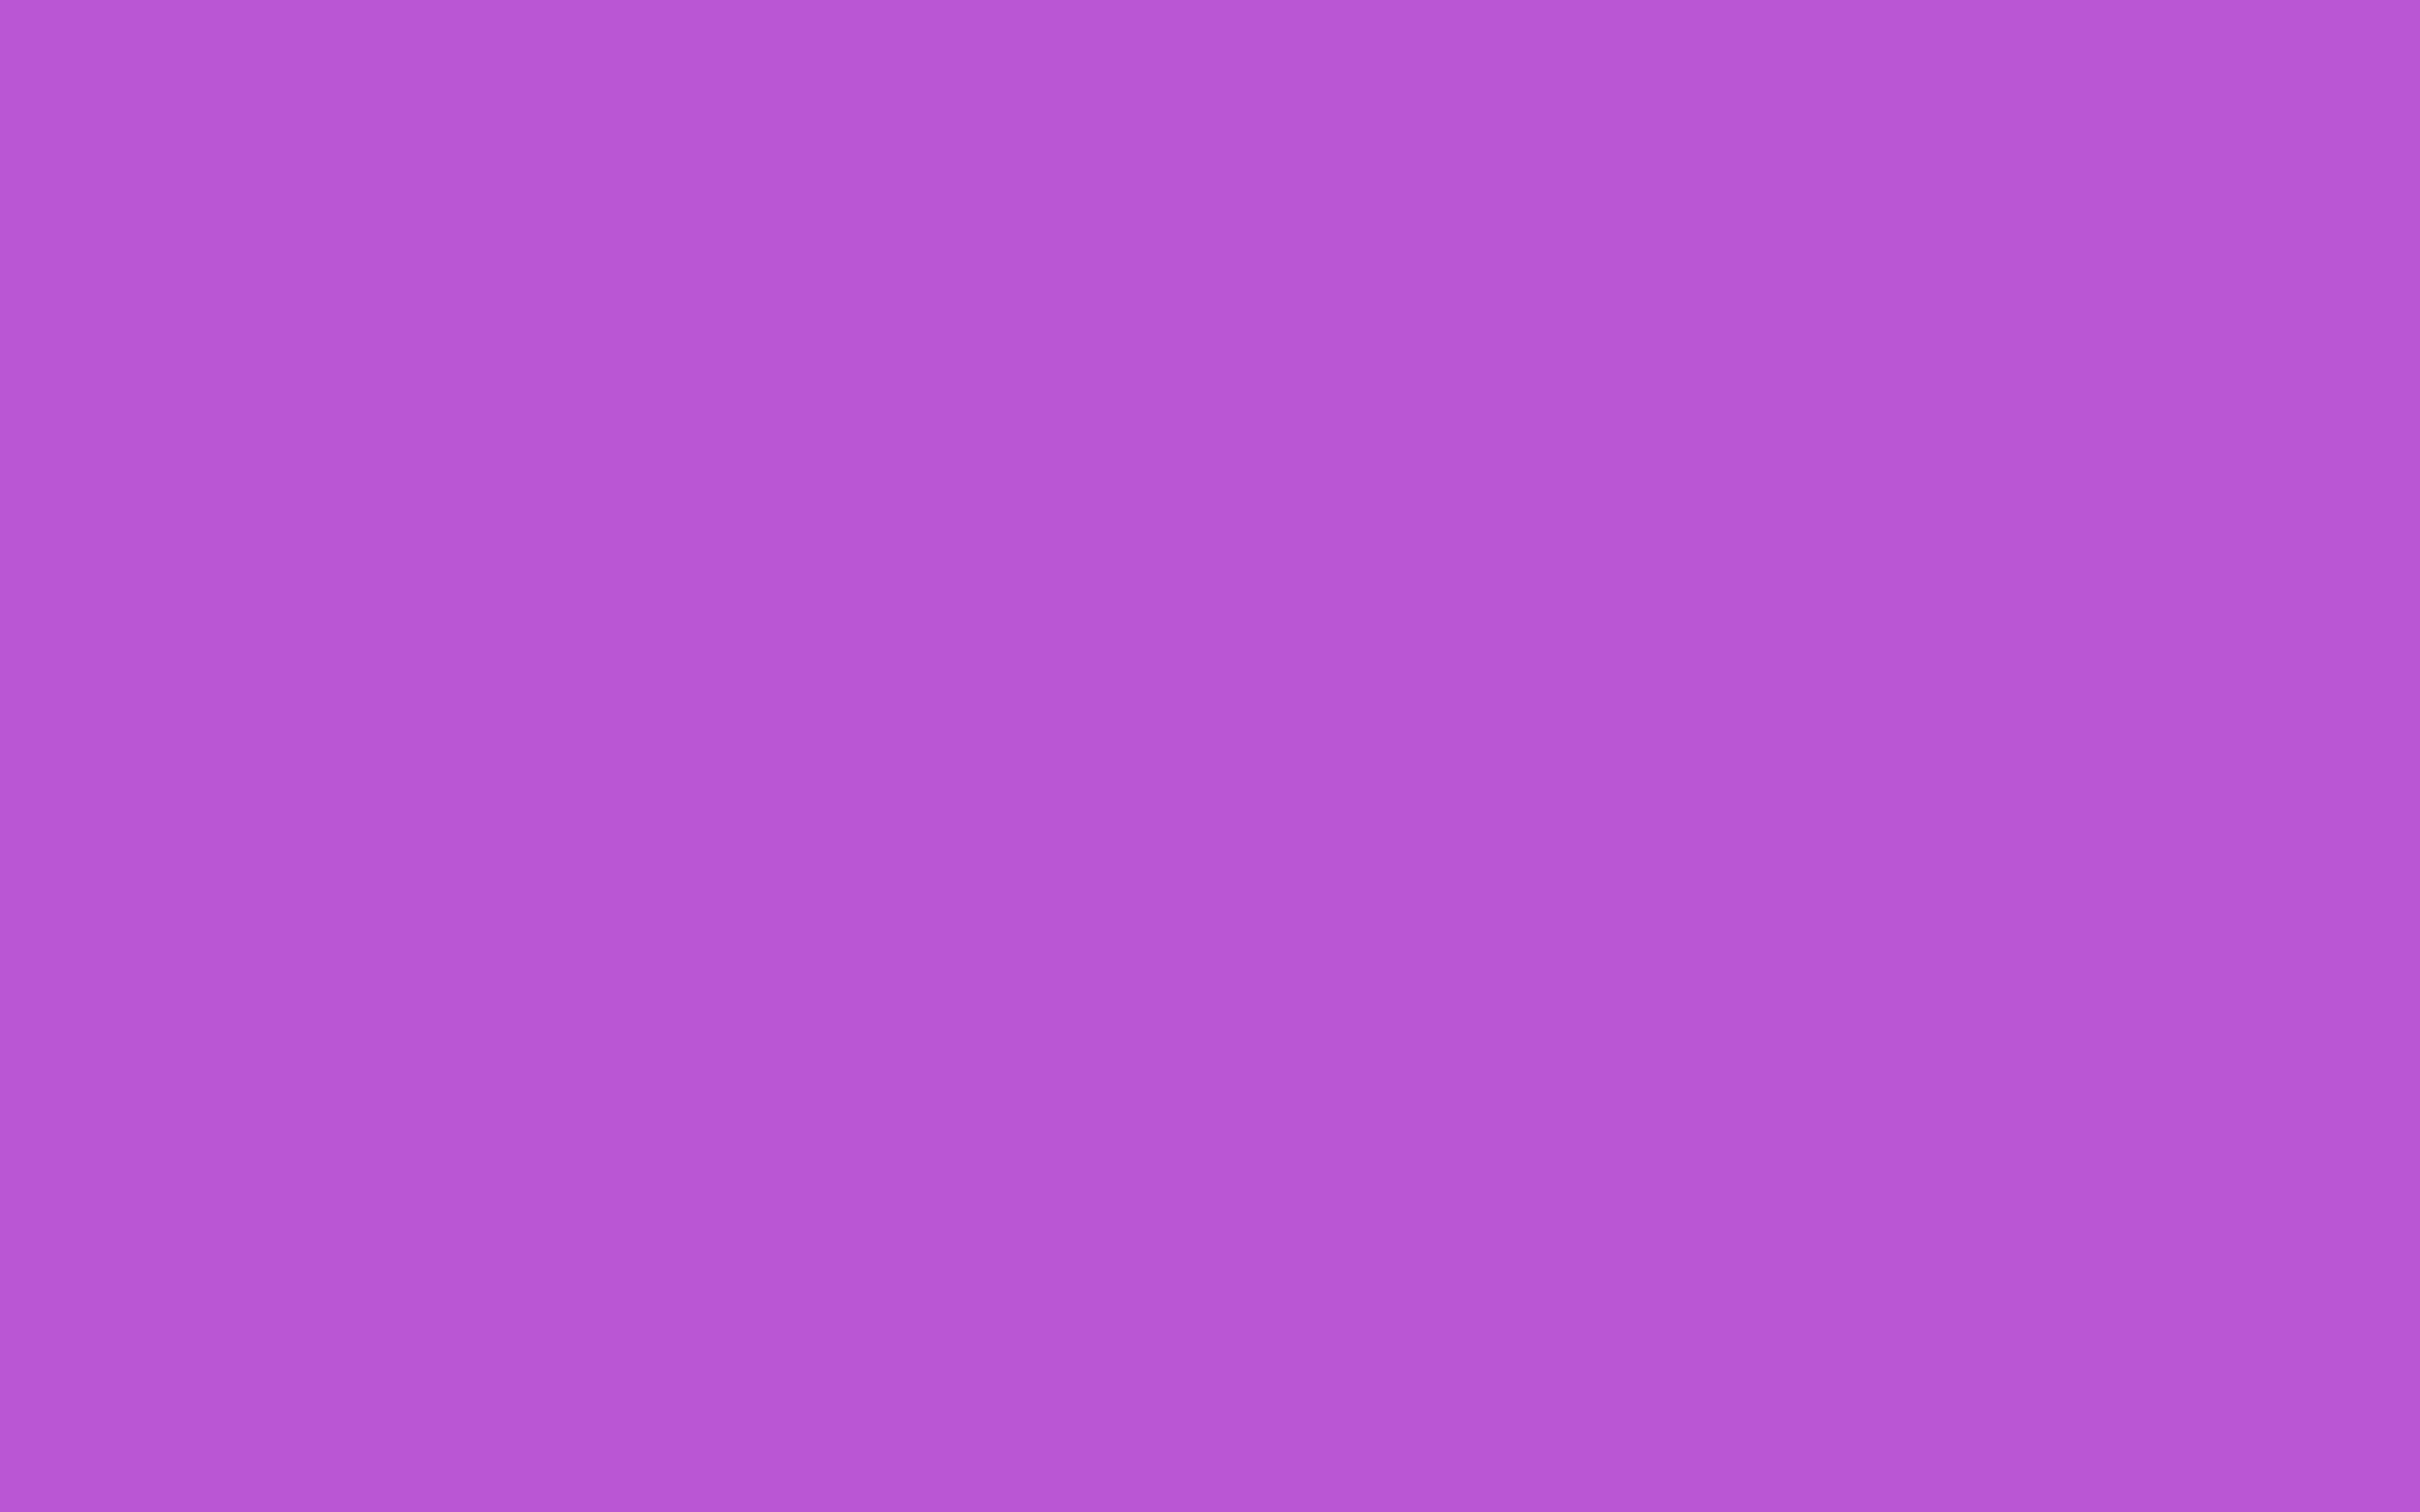 2560x1600 Medium Orchid Solid Color Background